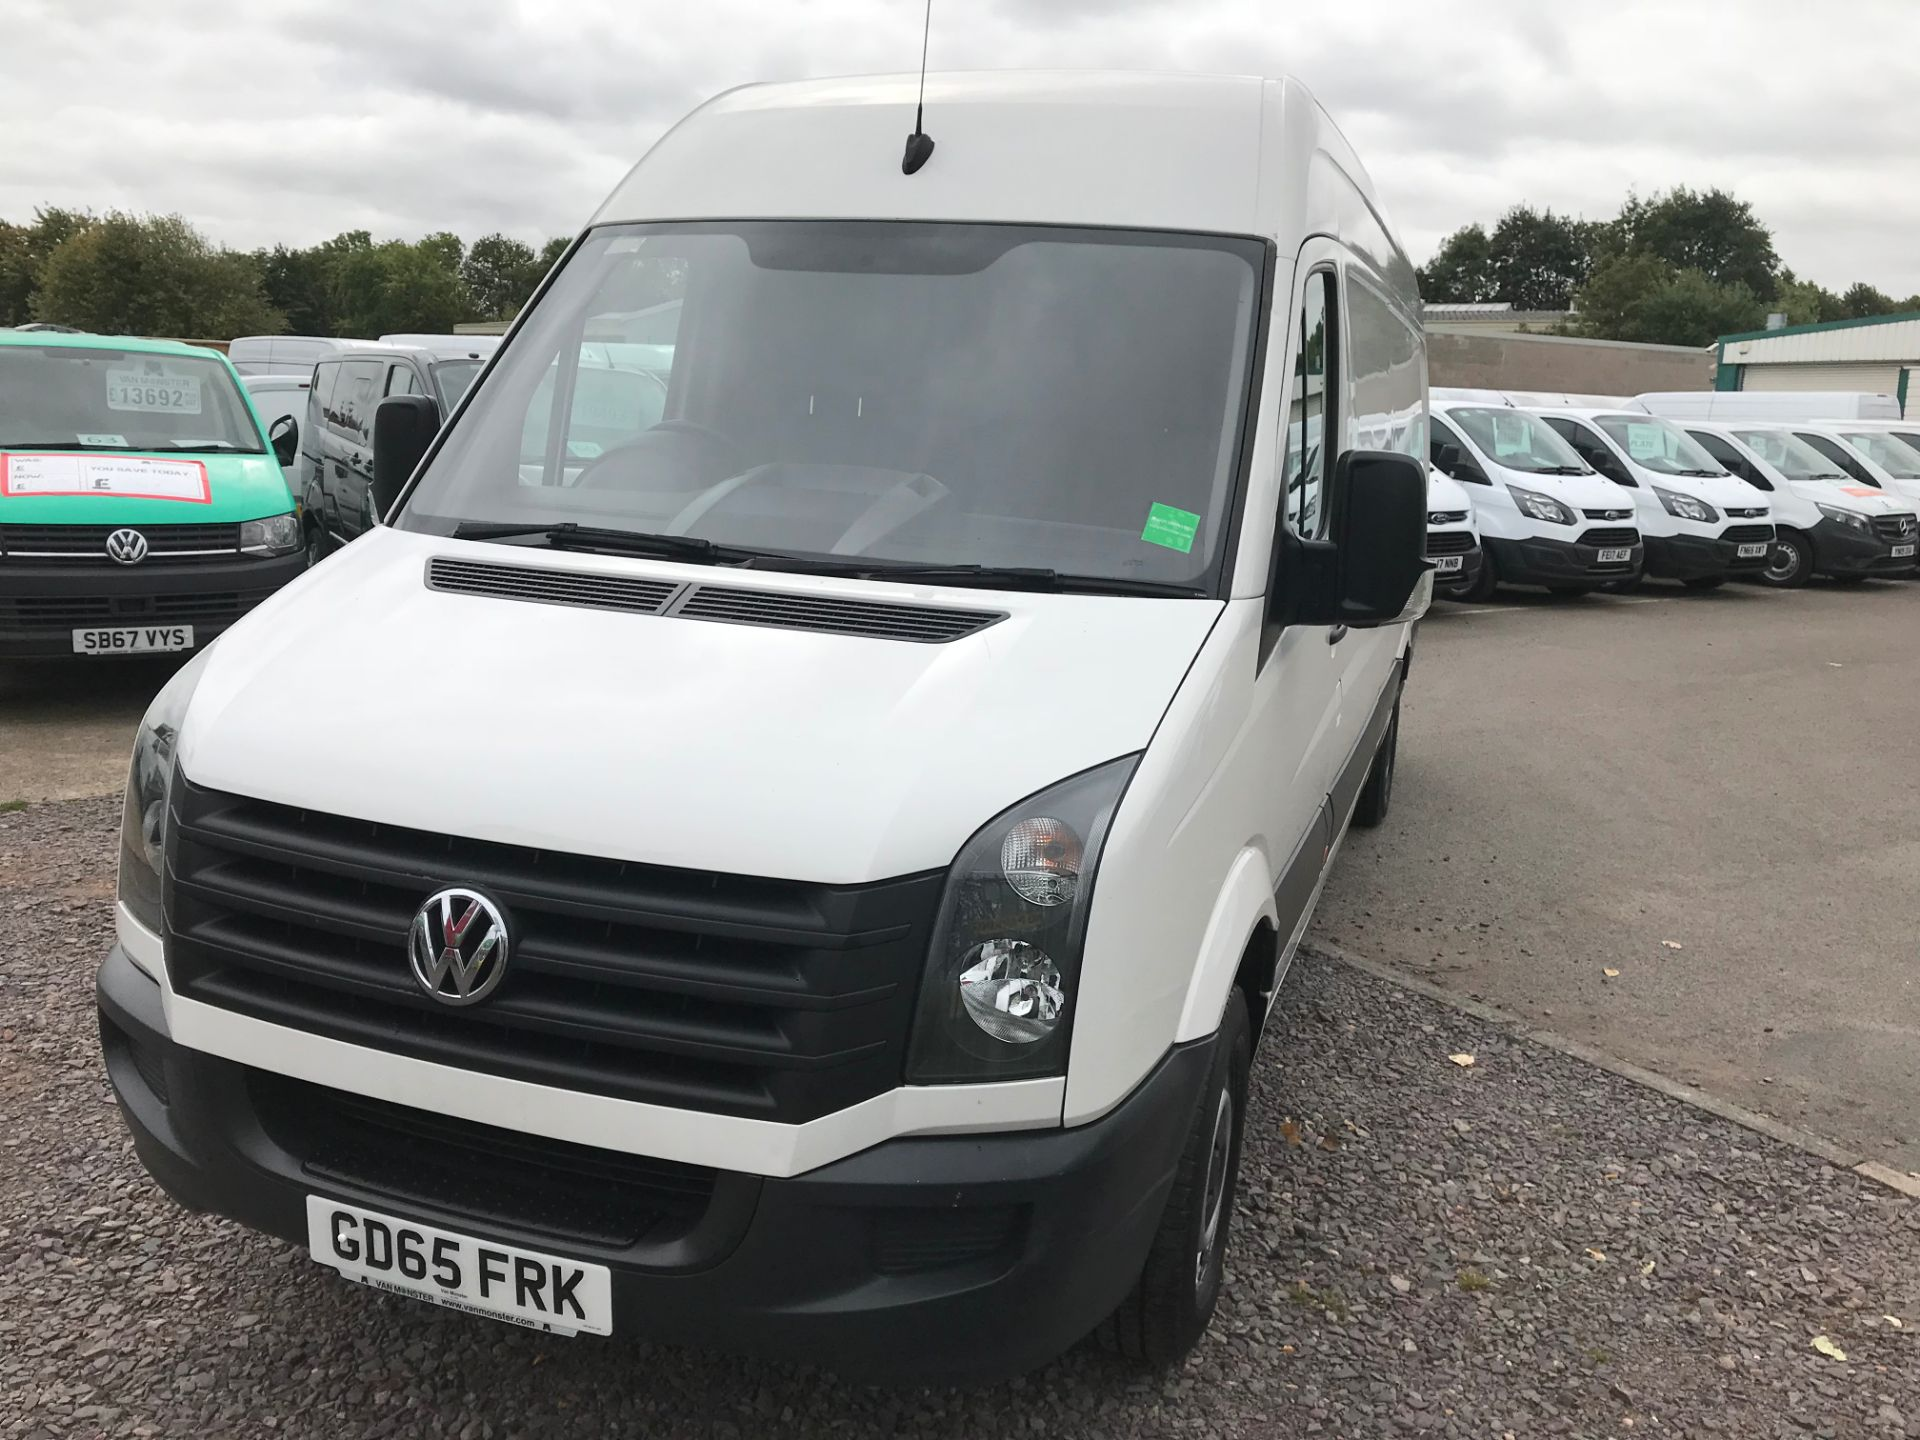 2015 Volkswagen Crafter CR35 LWB 2.0 TDI 136PS HIGH ROOF EURO 5 (GD65FRK) Image 9